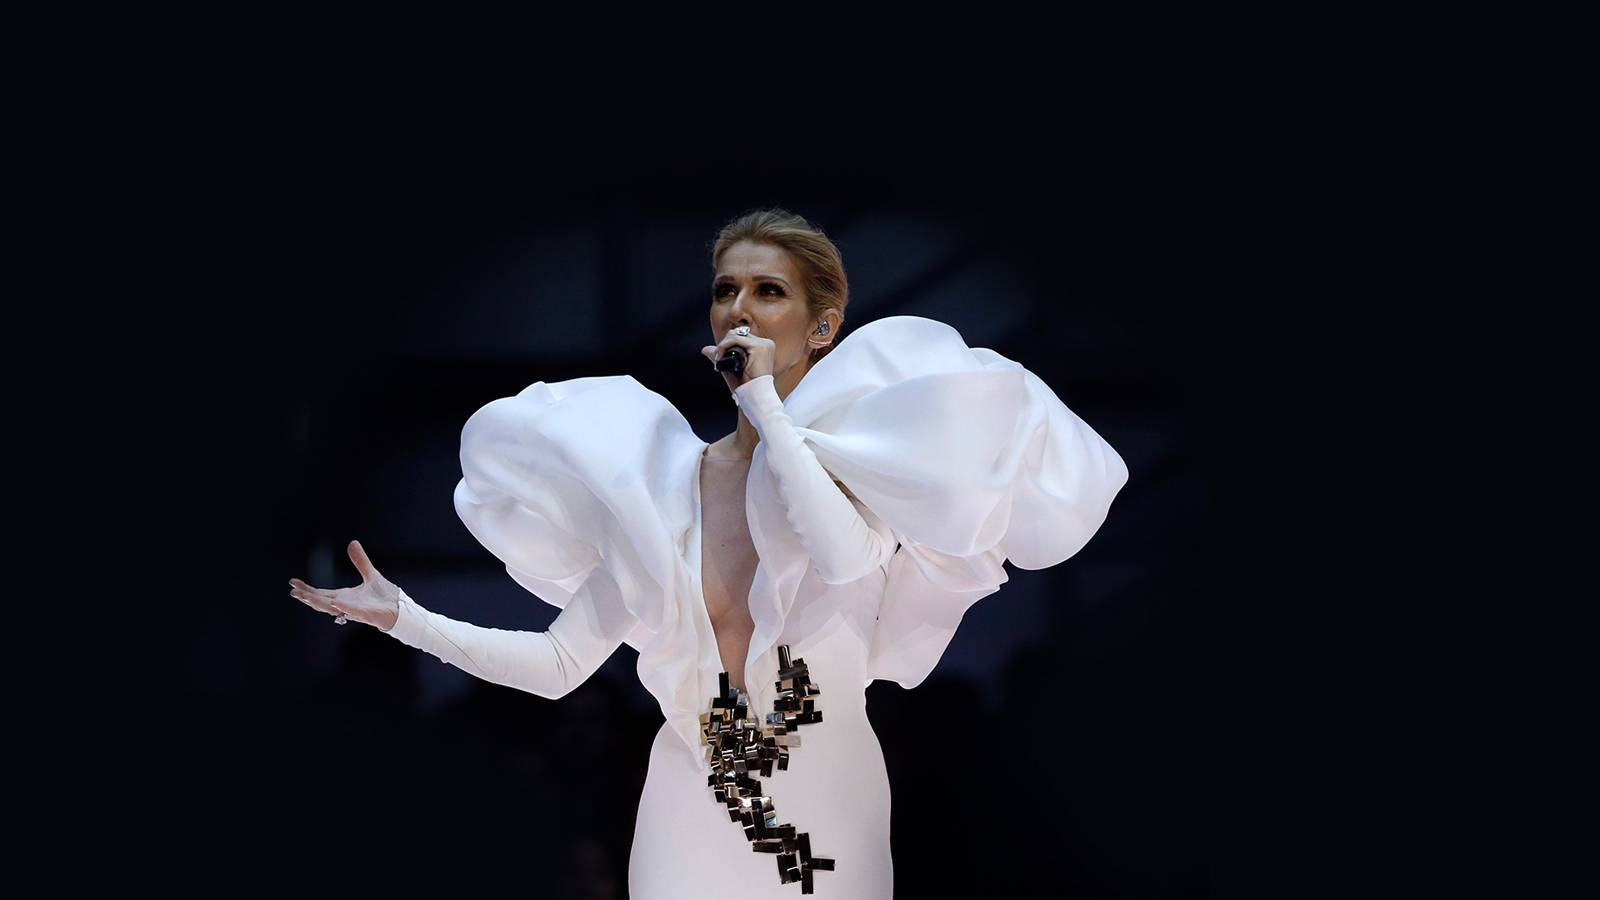 Celine Dion (Rescheduled from 3/13/2020, 11/18/2020)